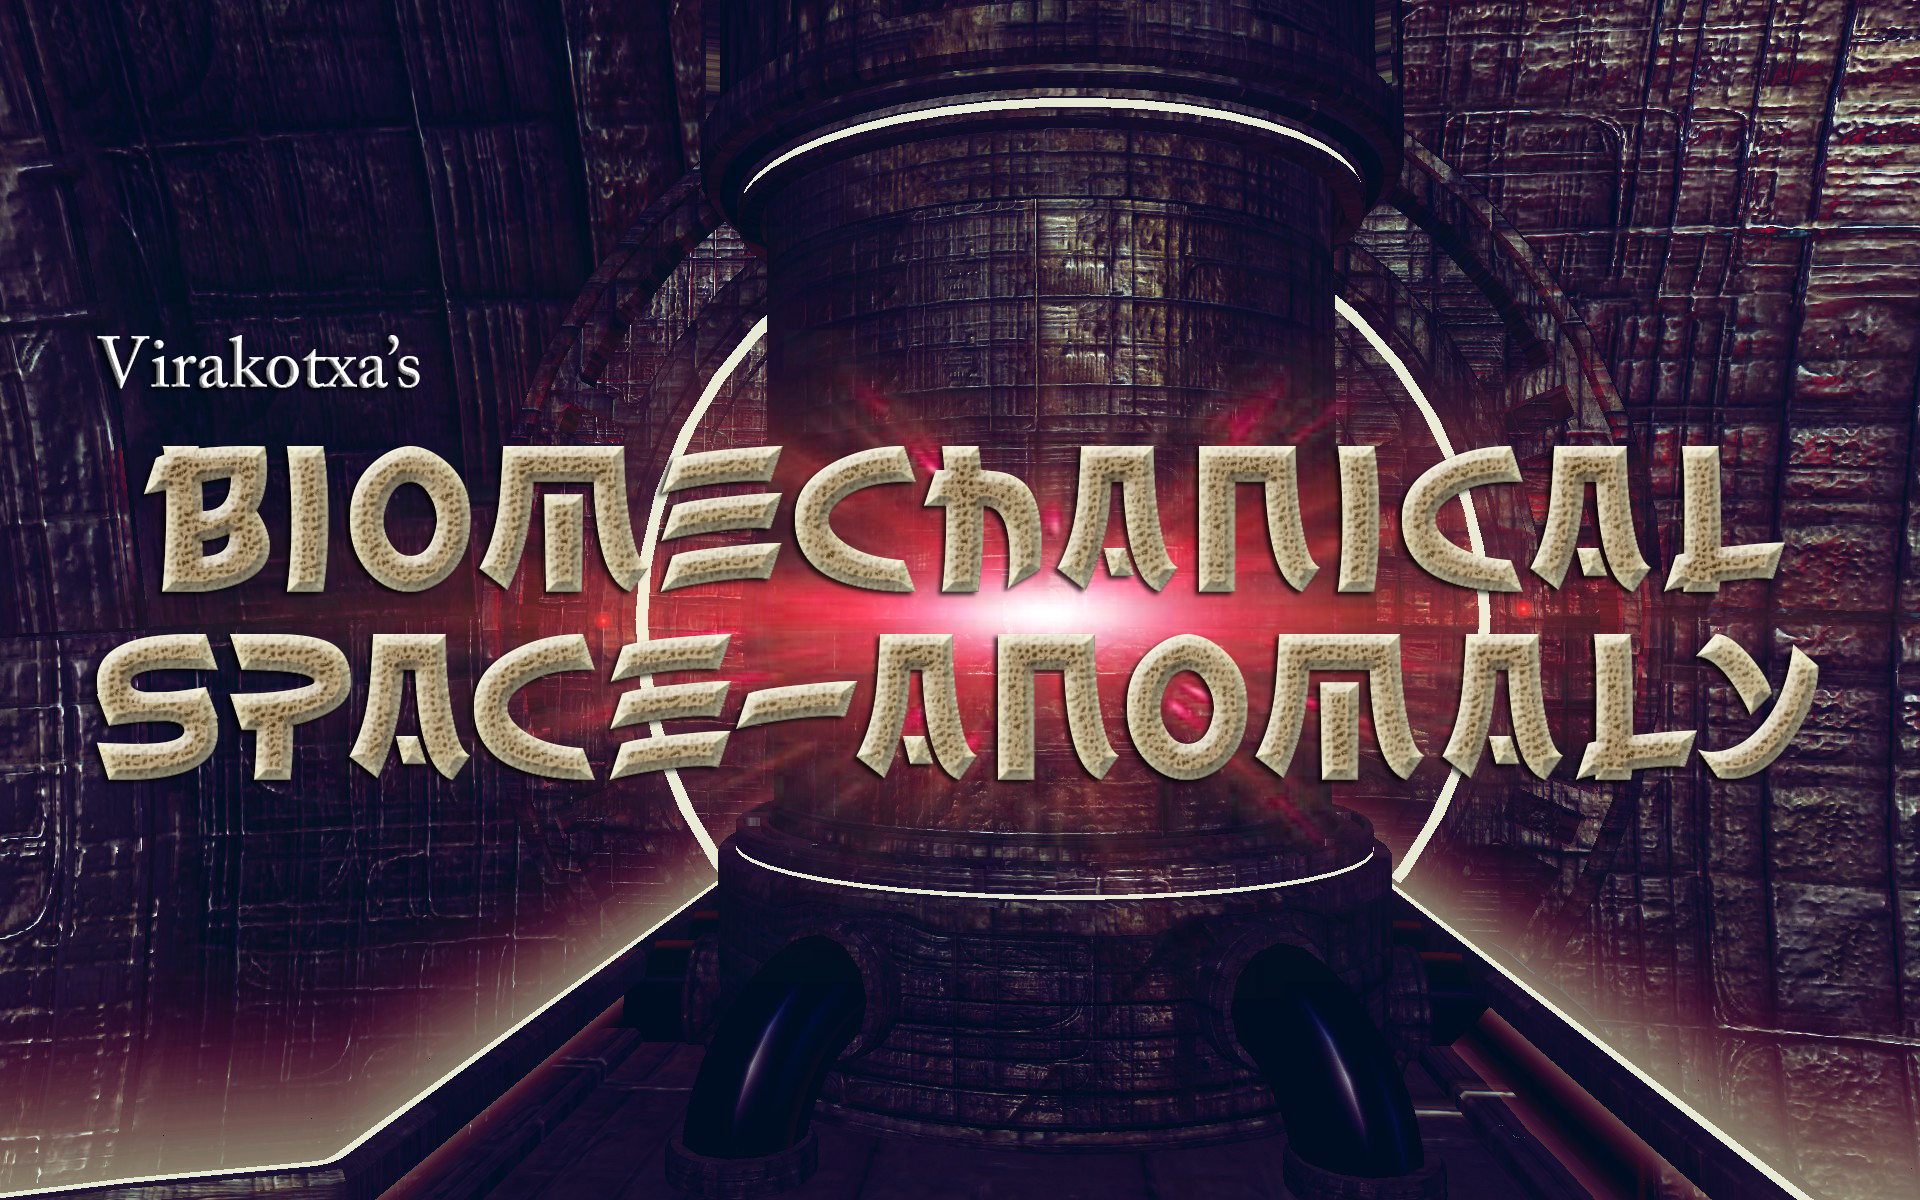 Biomechanical Space-Anomaly